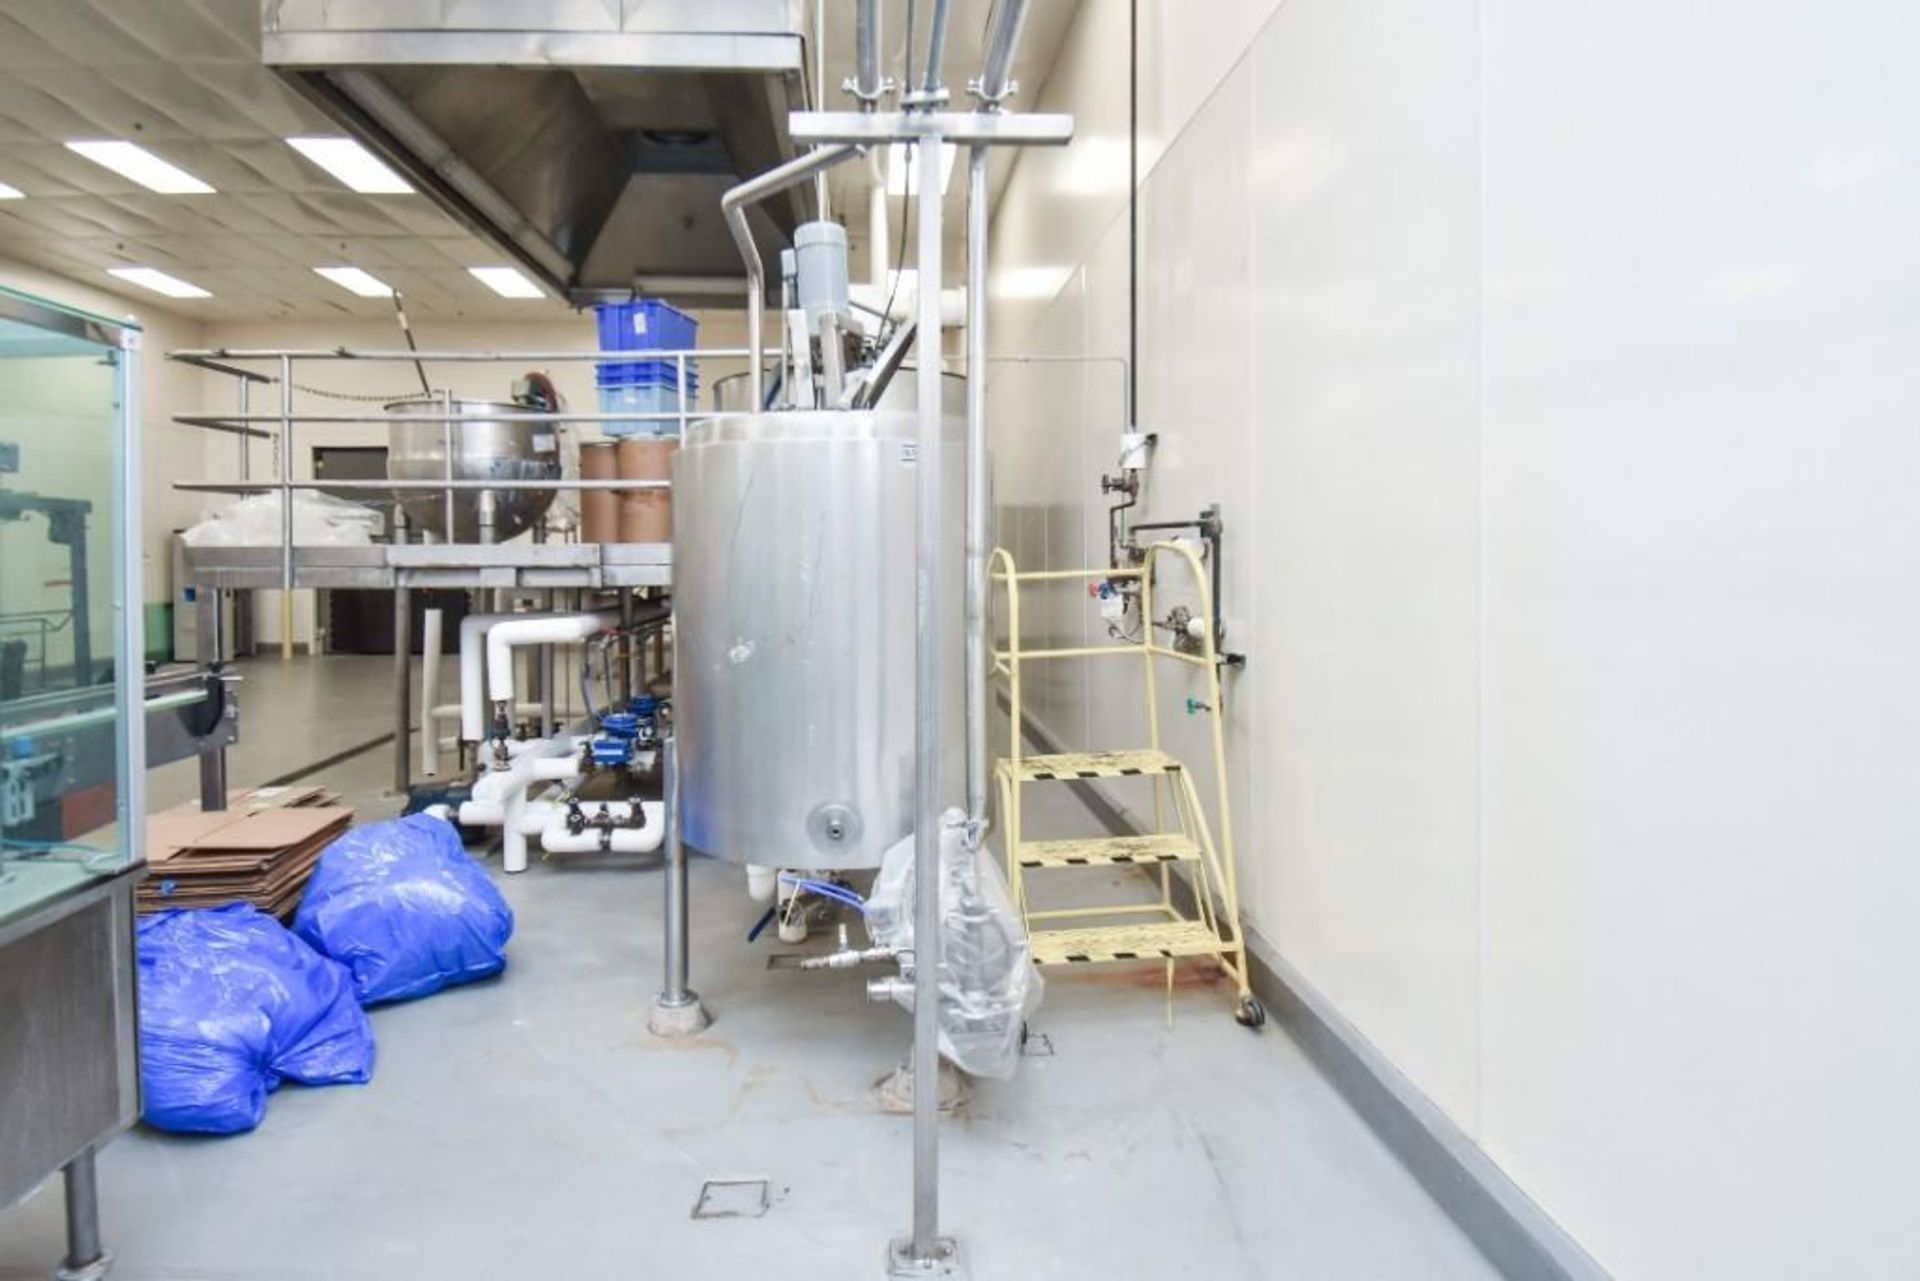 3 Jacketed Liquid Mixing Tank System - Image 19 of 21